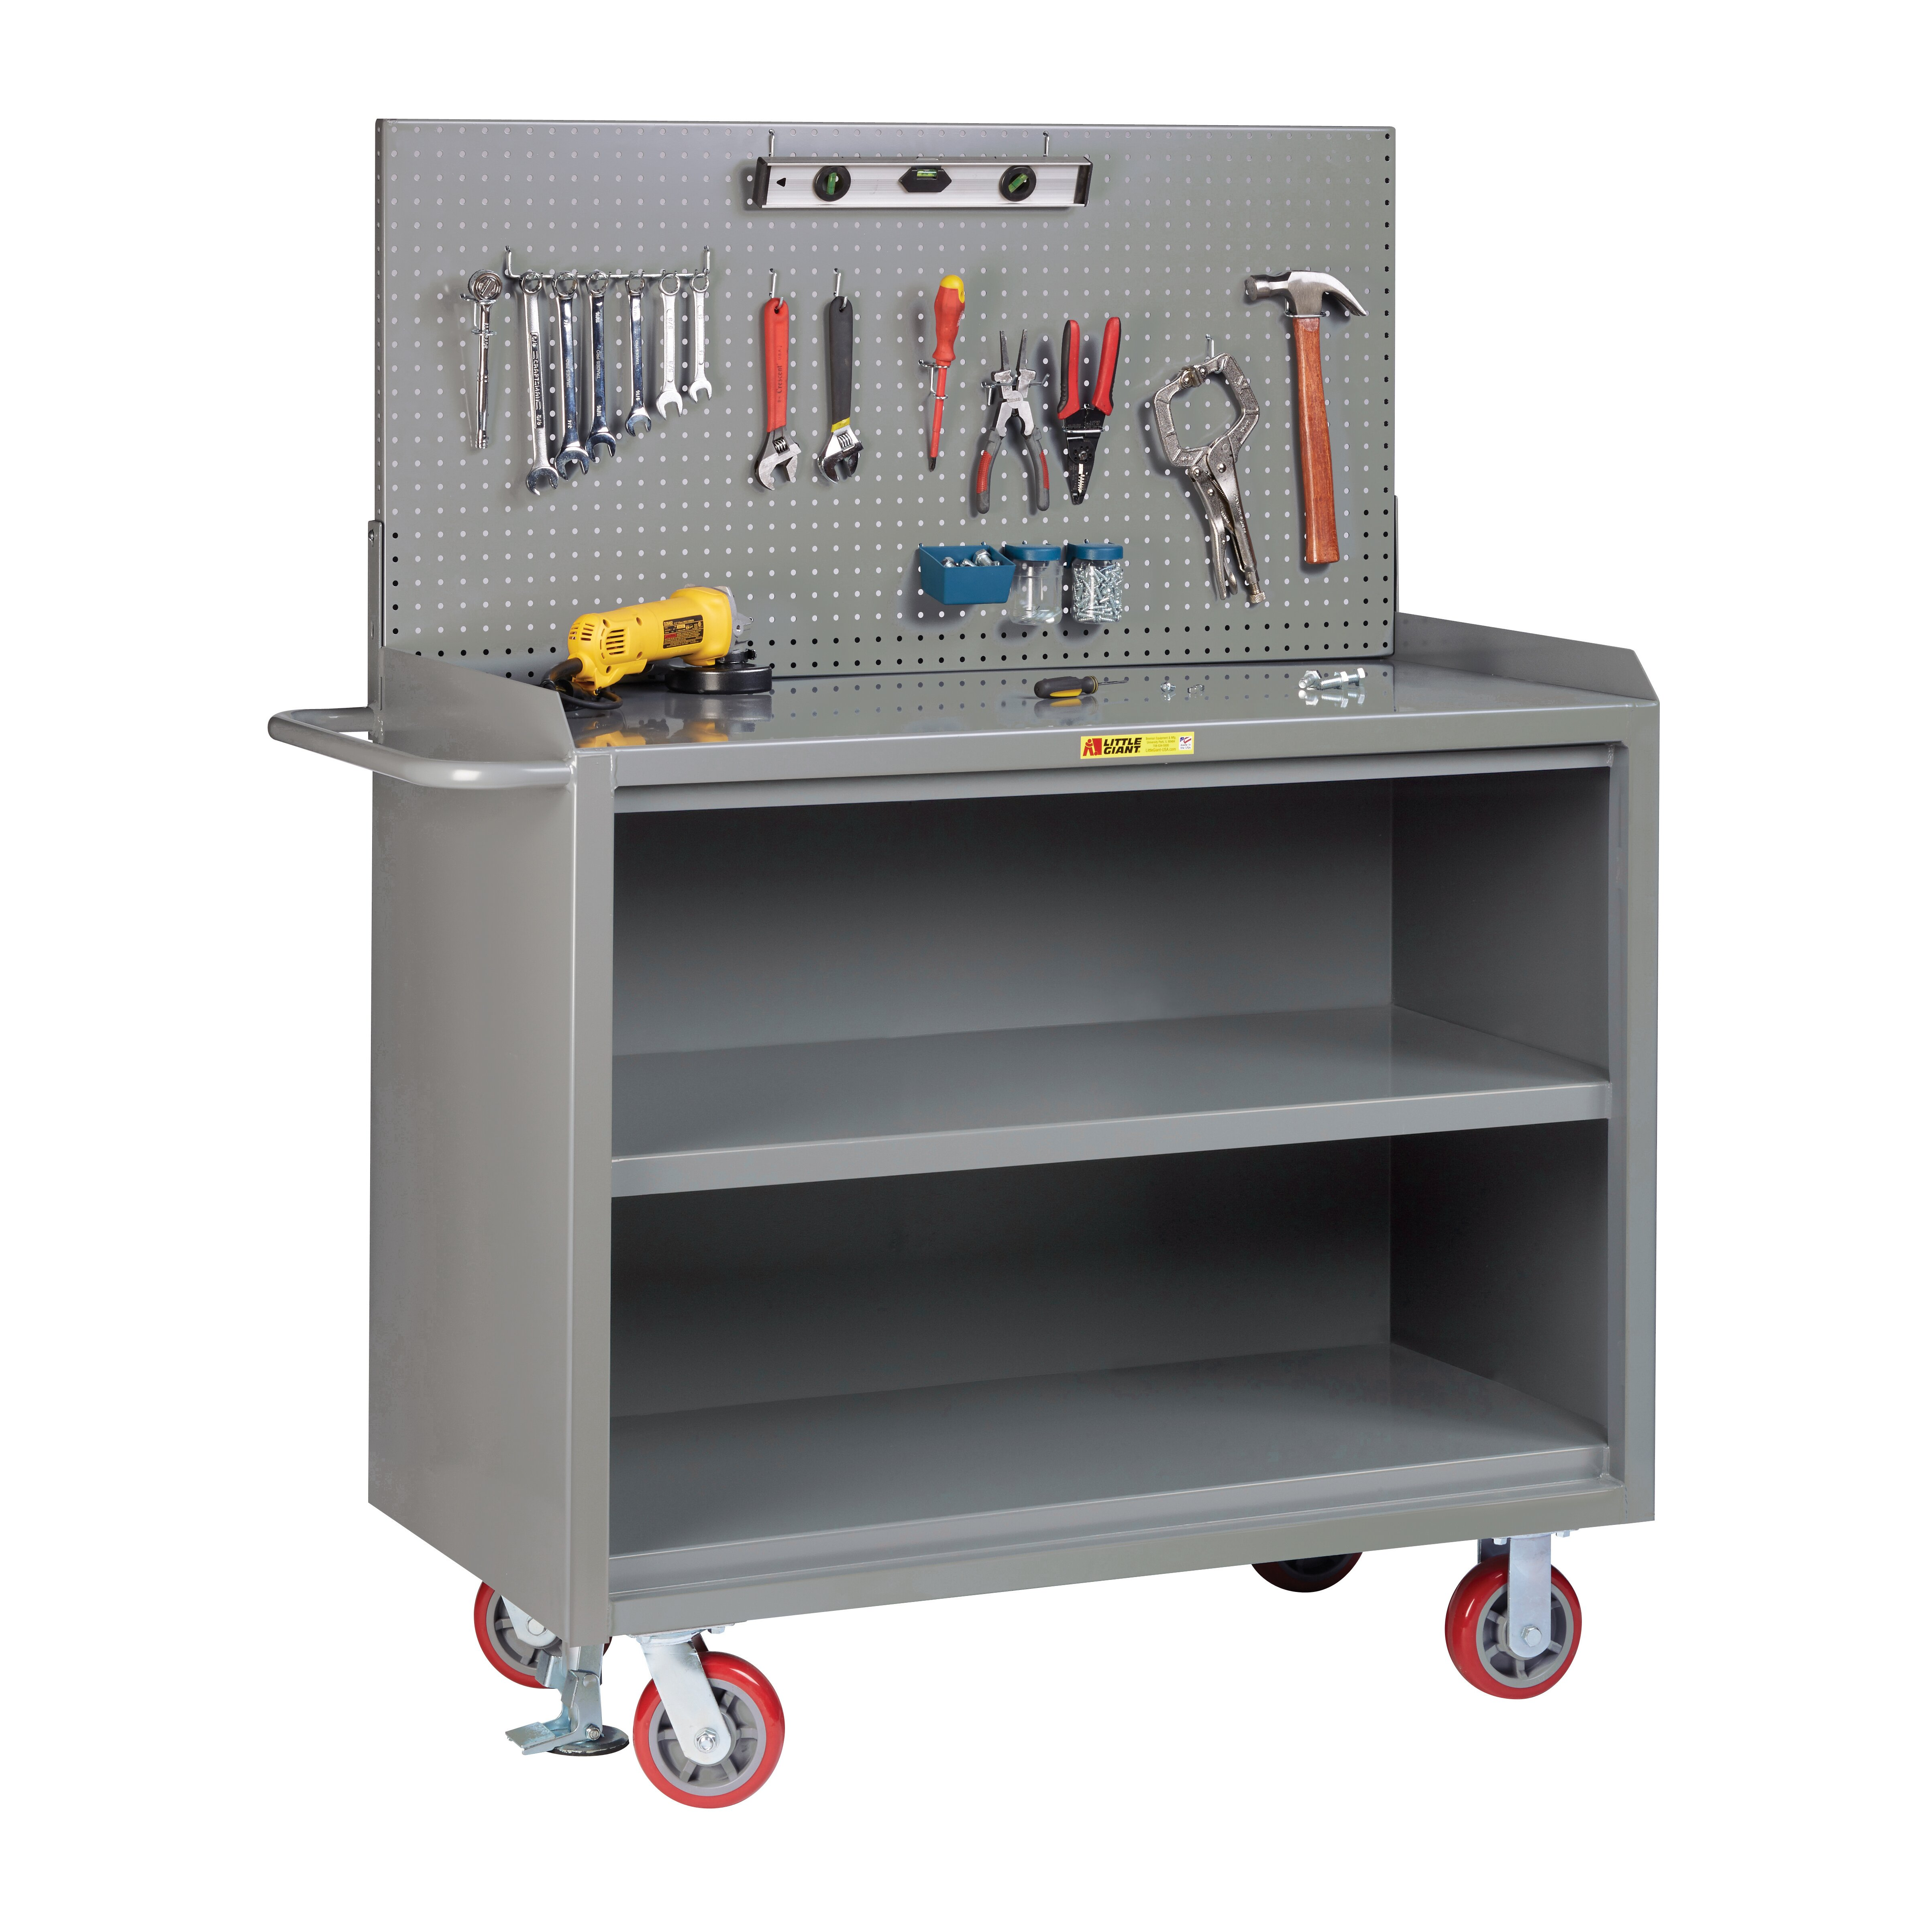 www service bench com 28 images service bench w5jbo  : 48 Mobile Service Bench with Center Shelf and Pegboard Panel MB3 2448 FL PB from 162.243.164.56 size 4812 x 4812 jpeg 1165kB